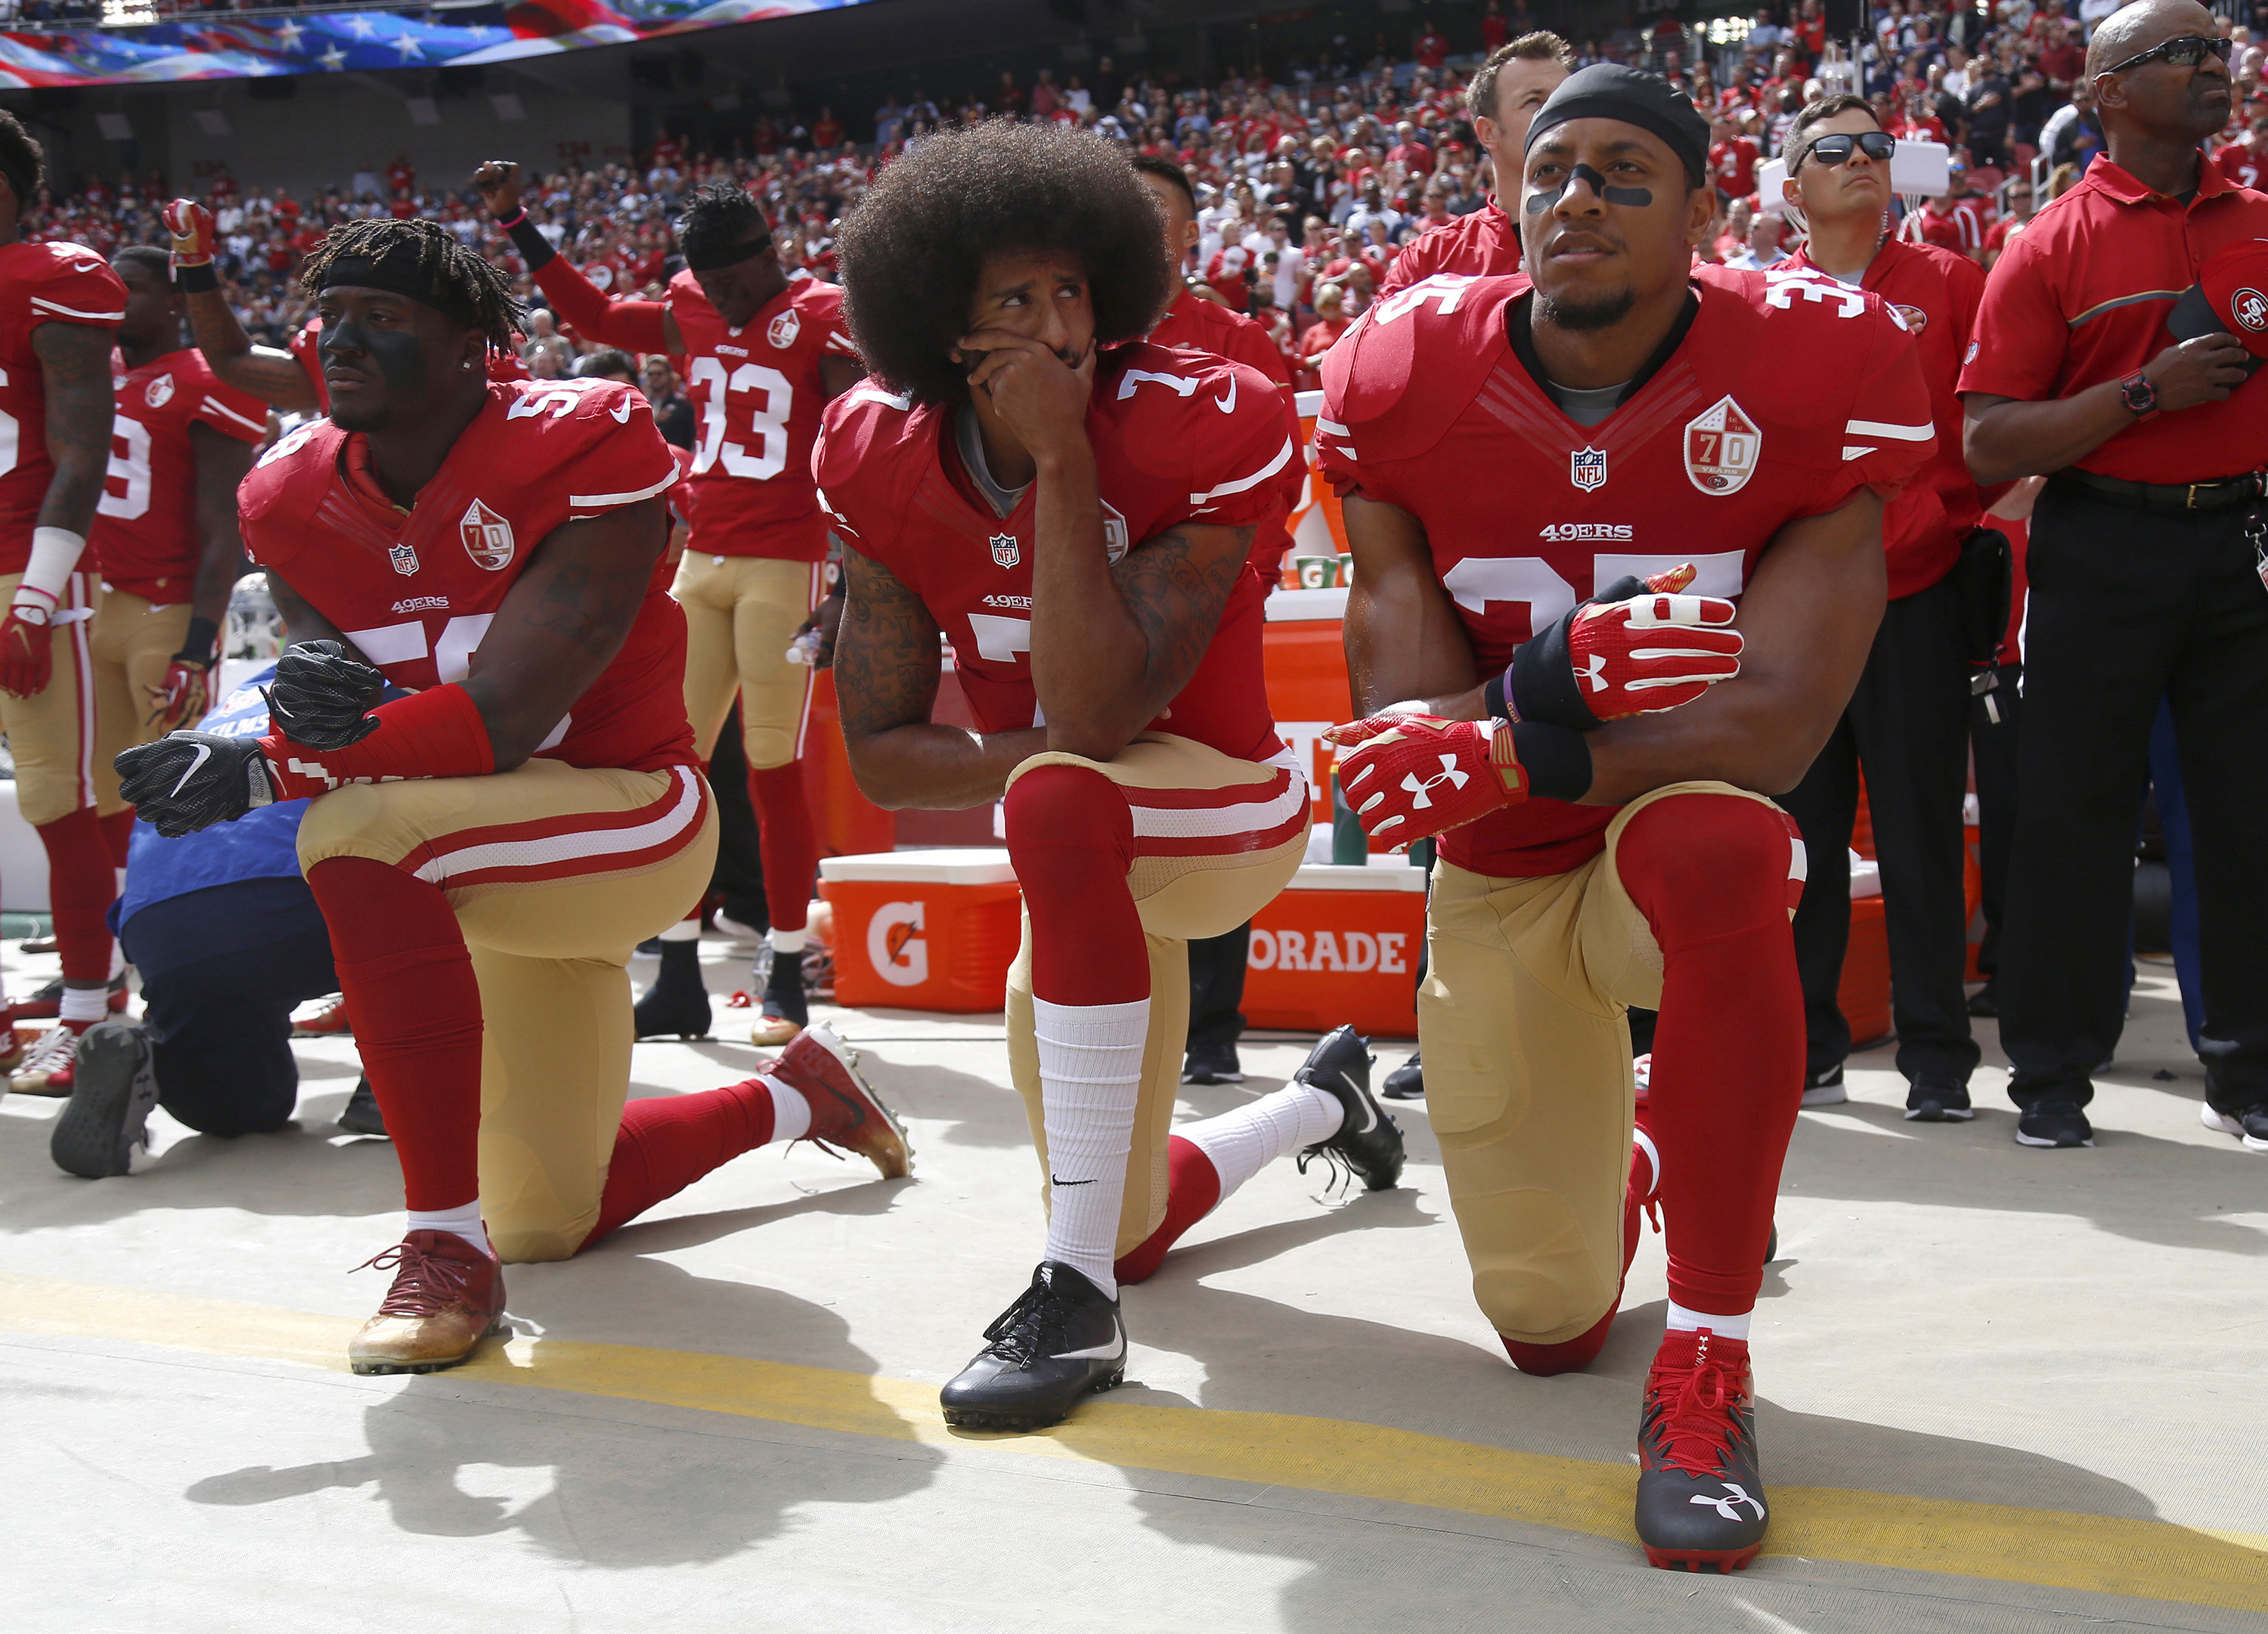 Colin Kaepernick and his teammates kneels in protest before an NFL game. Credit PA